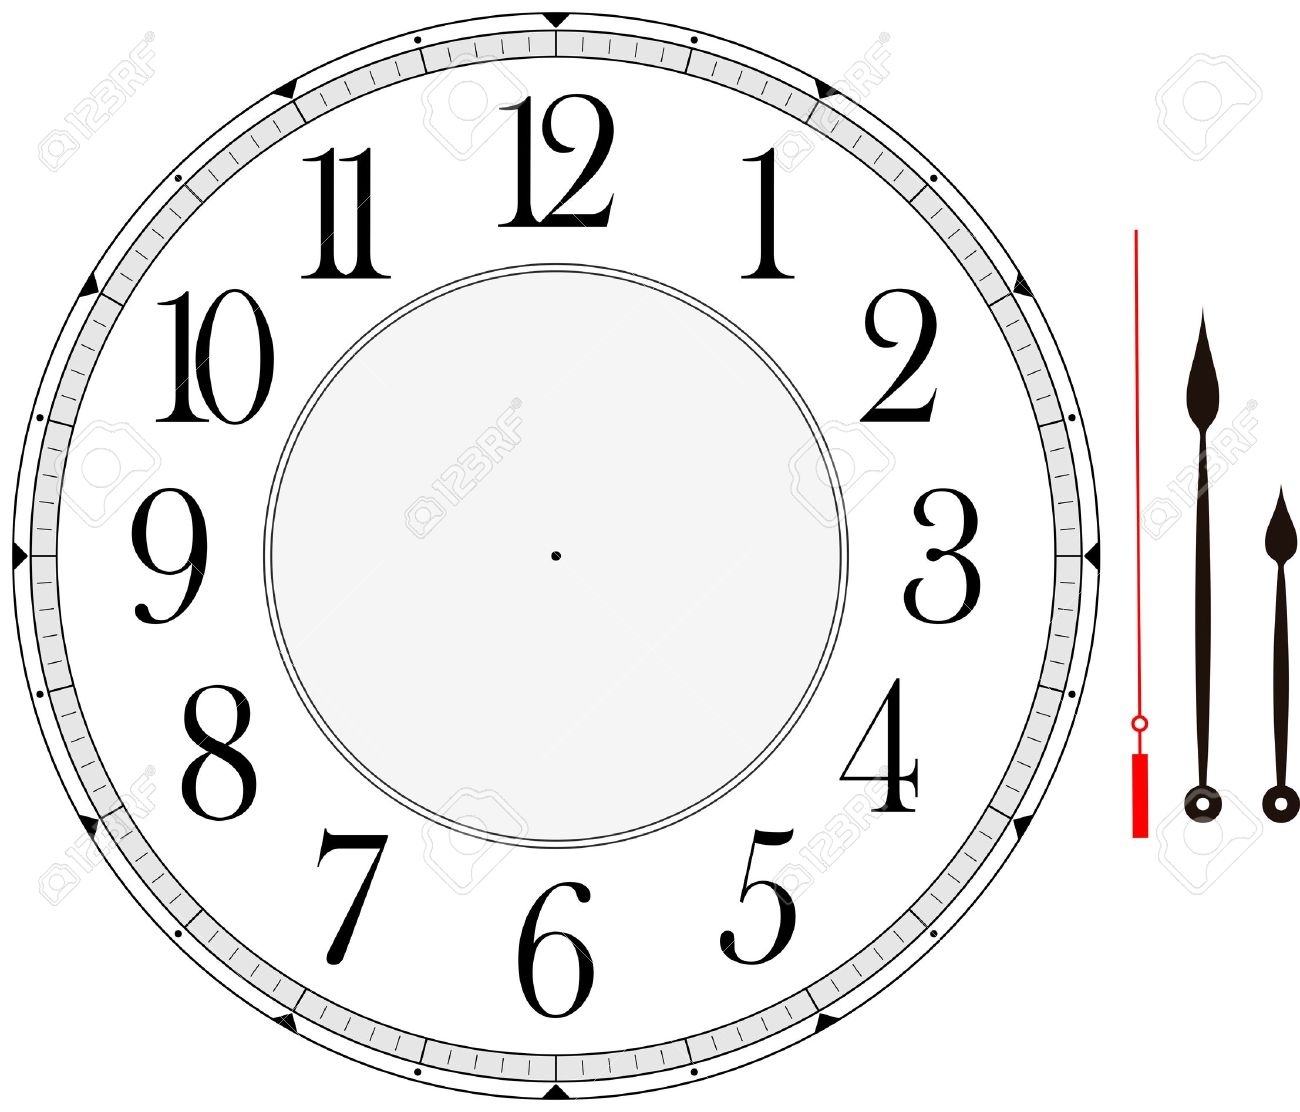 worksheet Clock Face Template clock face template with hour minute and second hands to make your own time isolated